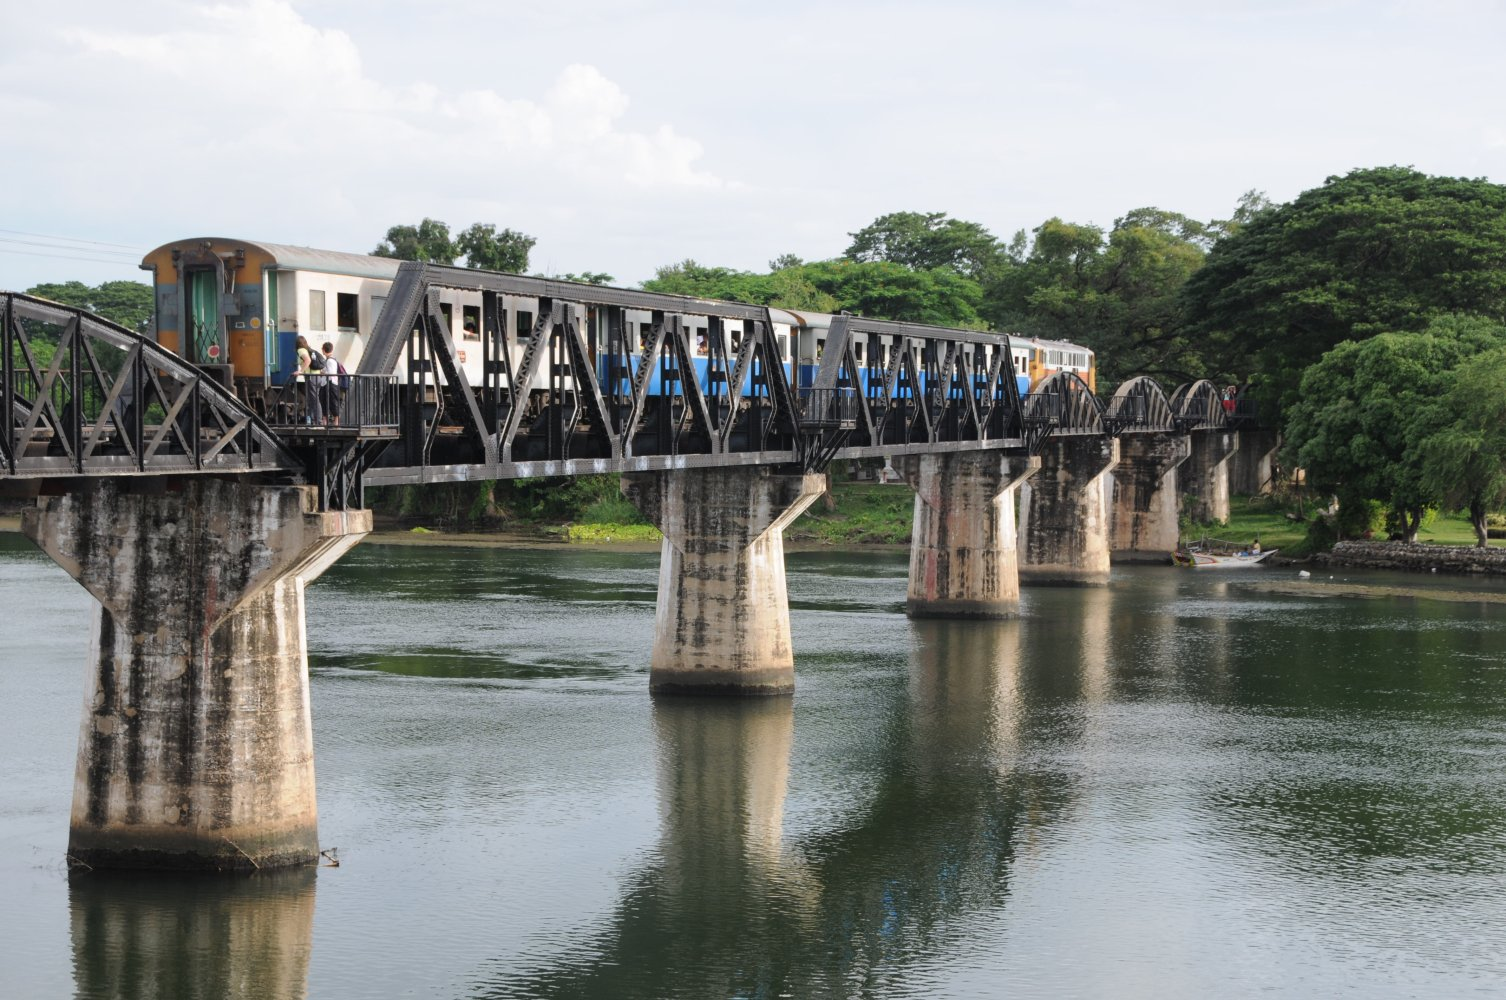 File:Bridge Over the ...River Kwai, Kanchanaburi, Thailand.jpg